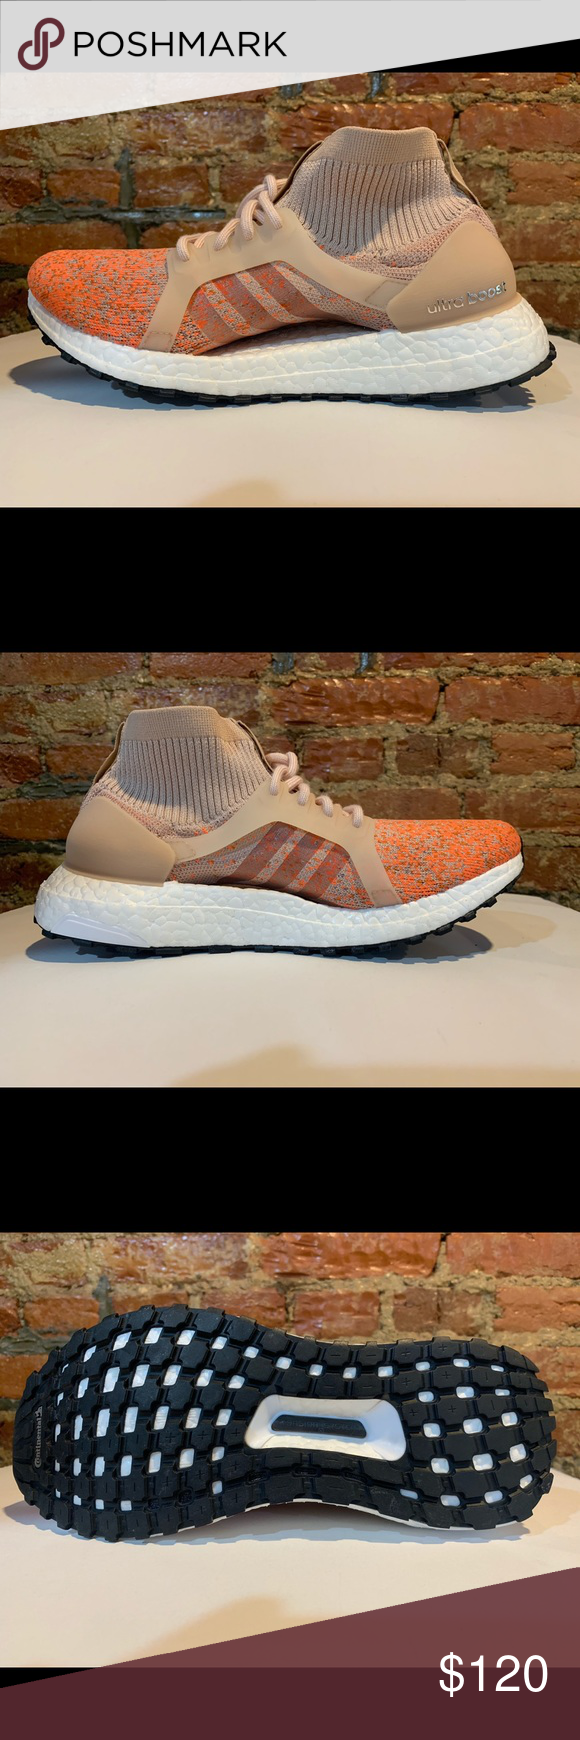 2dc1190f6520e NEW Brand new pair of Adidas Ultraboost X Brand new pair of Adidas  Ultraboost X All